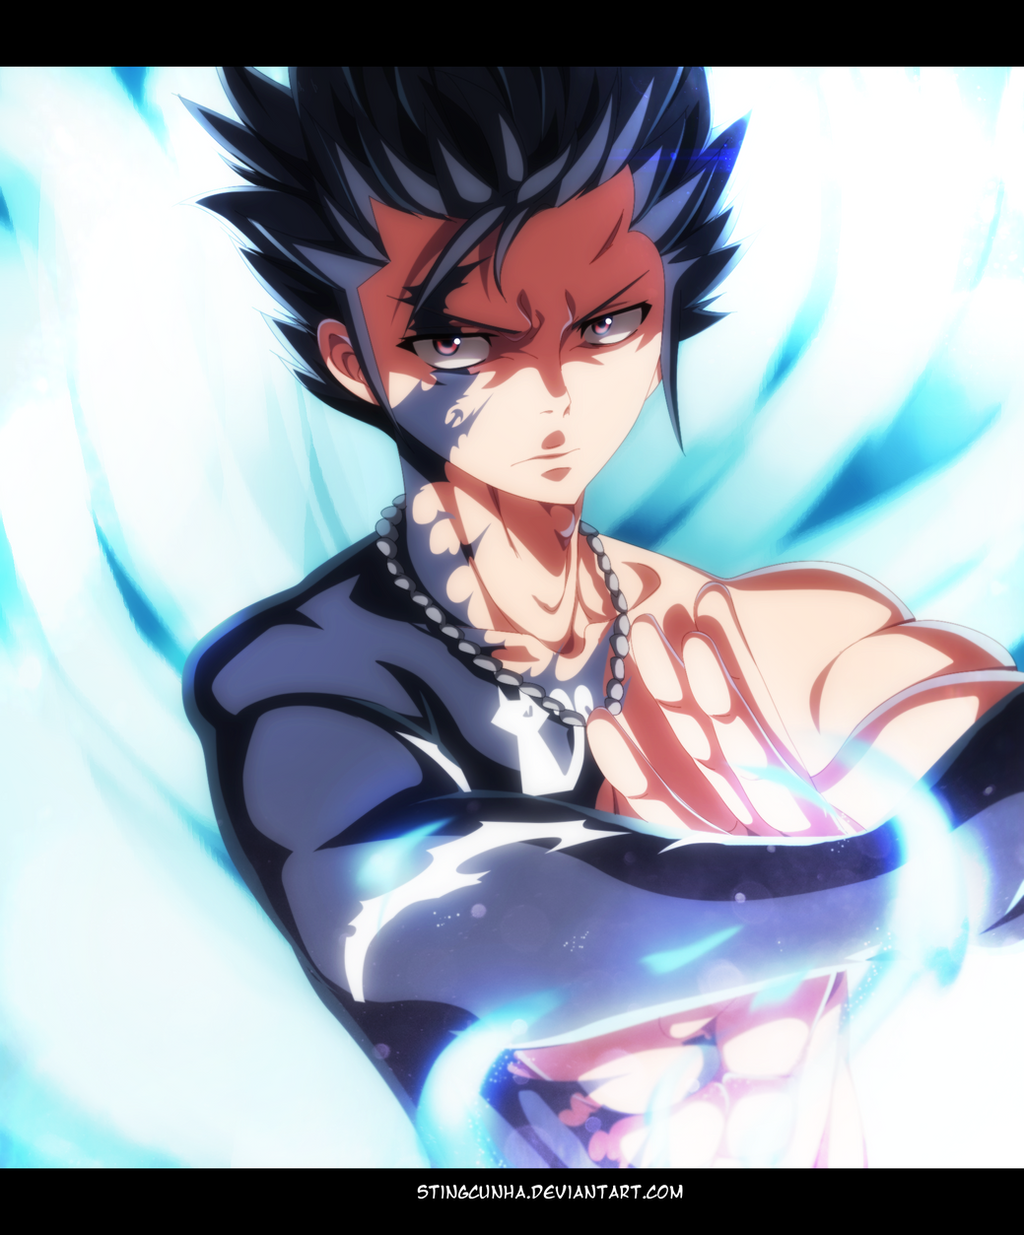 Fairy tail 446 gray fullbuster demon slayer by for Demon slayer